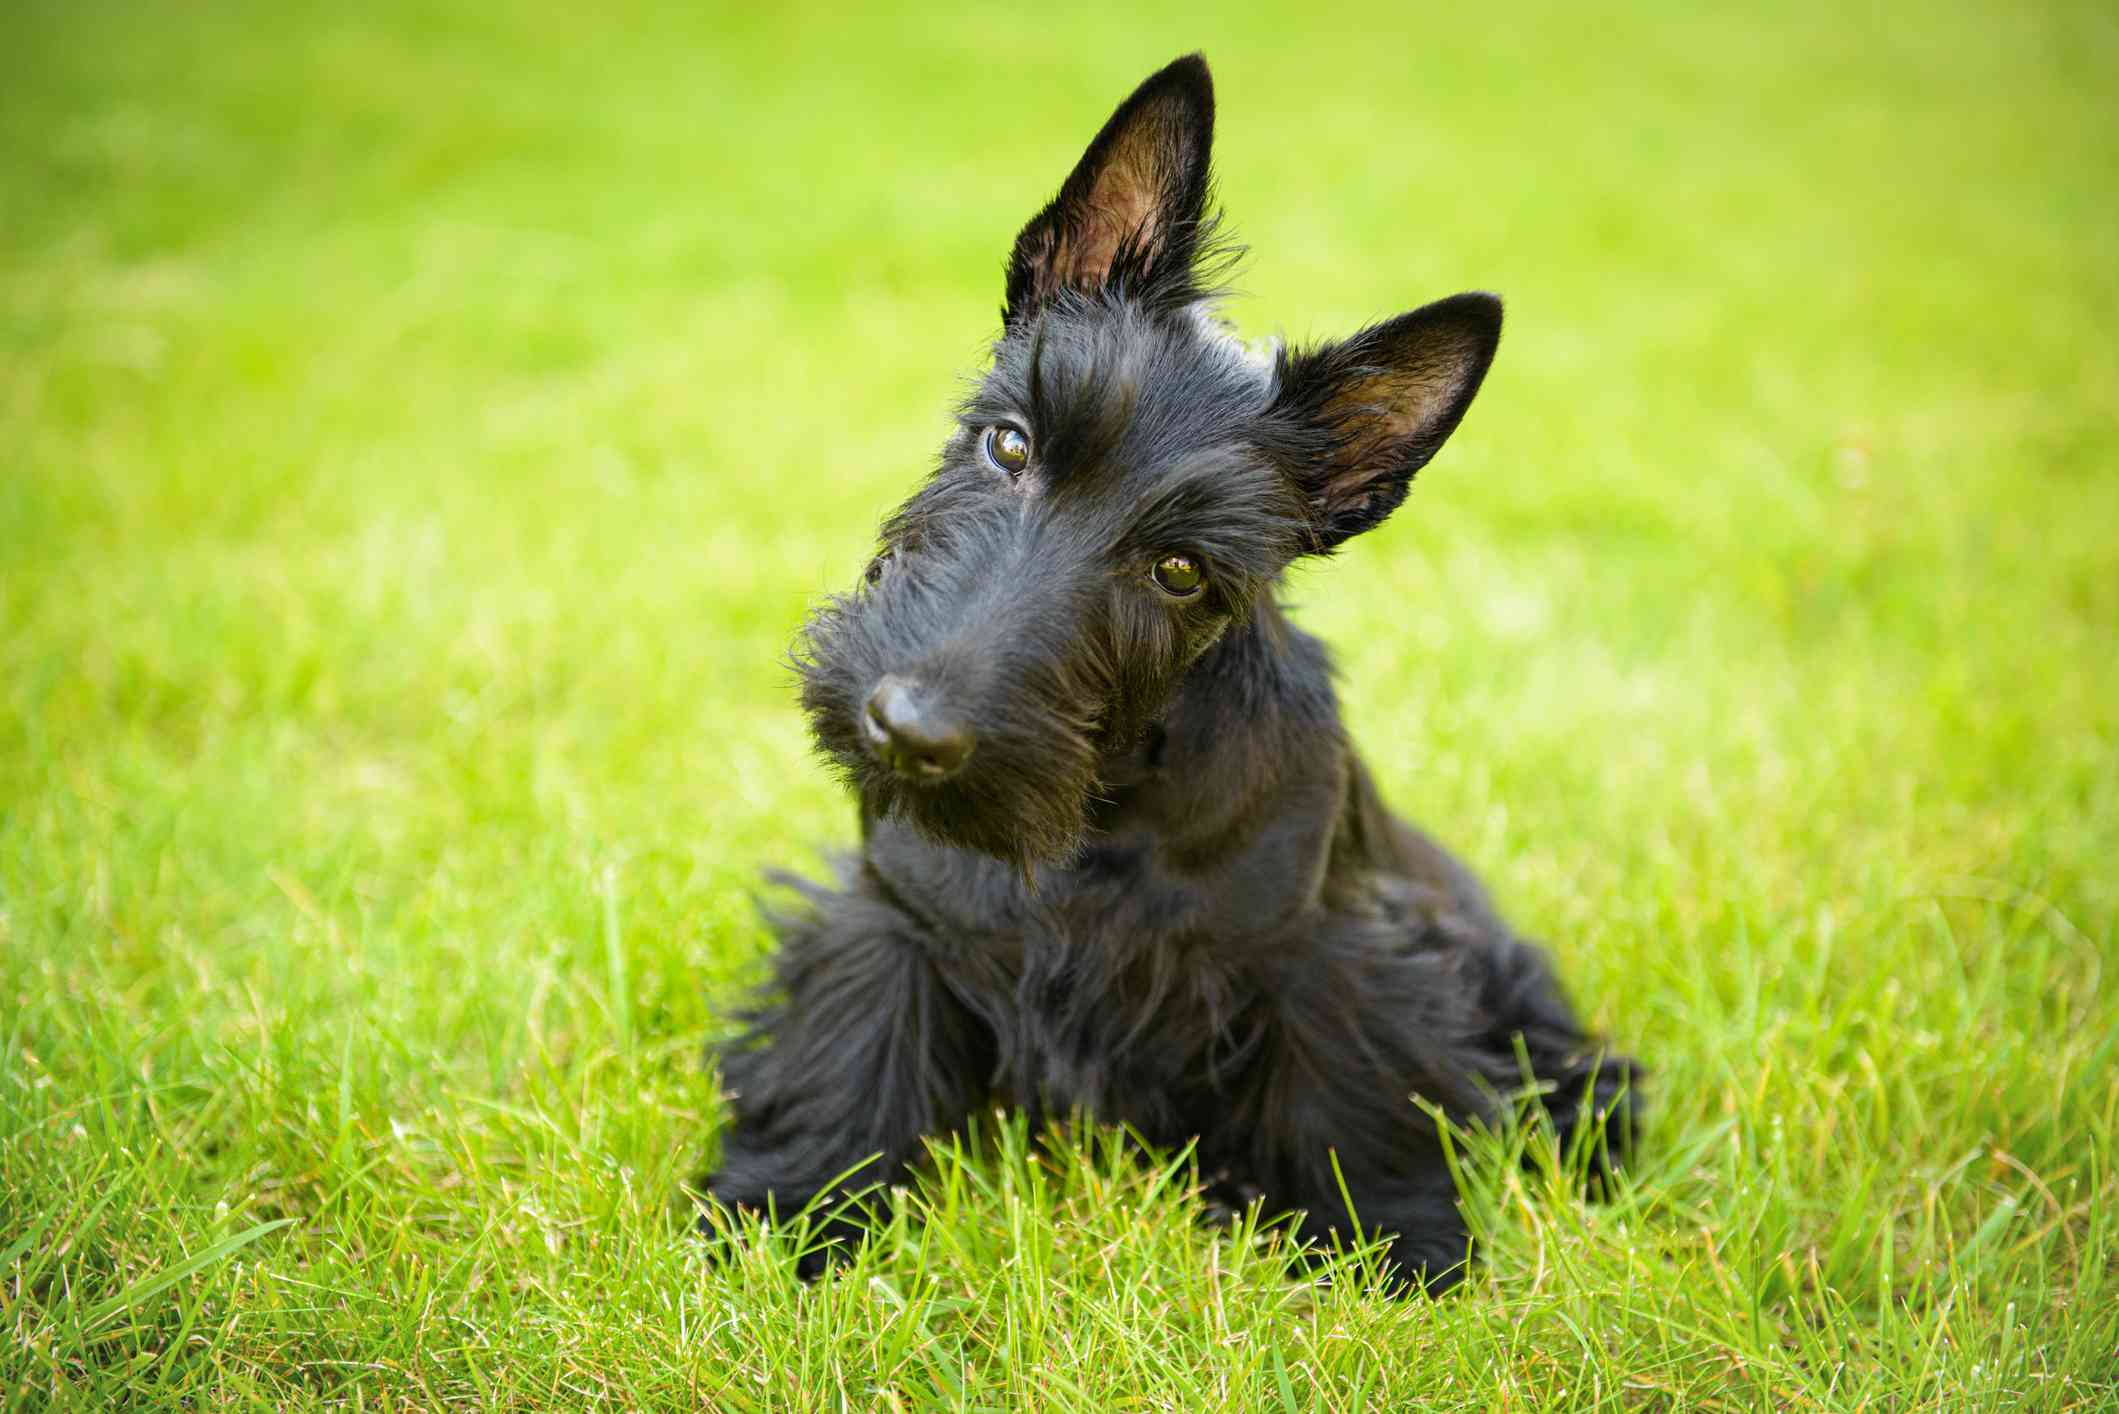 Scottish Terrier in the grass with head tilted looking at camera.